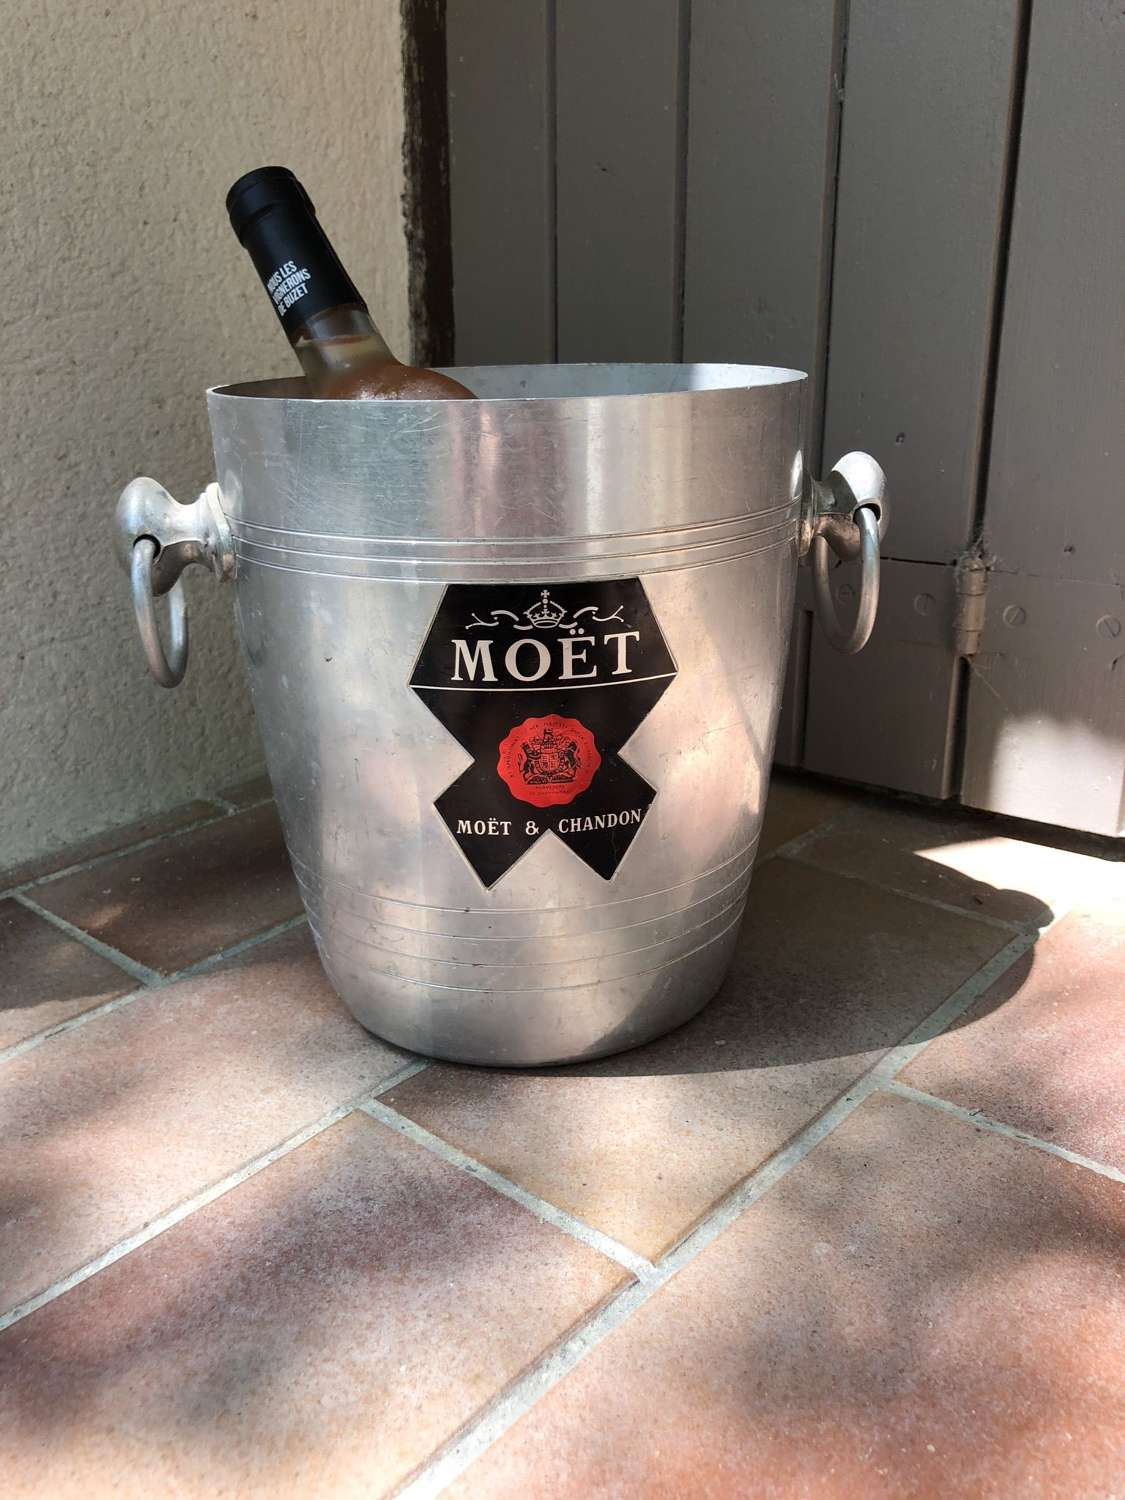 French 'Moet & Chandon' Ice Bucket